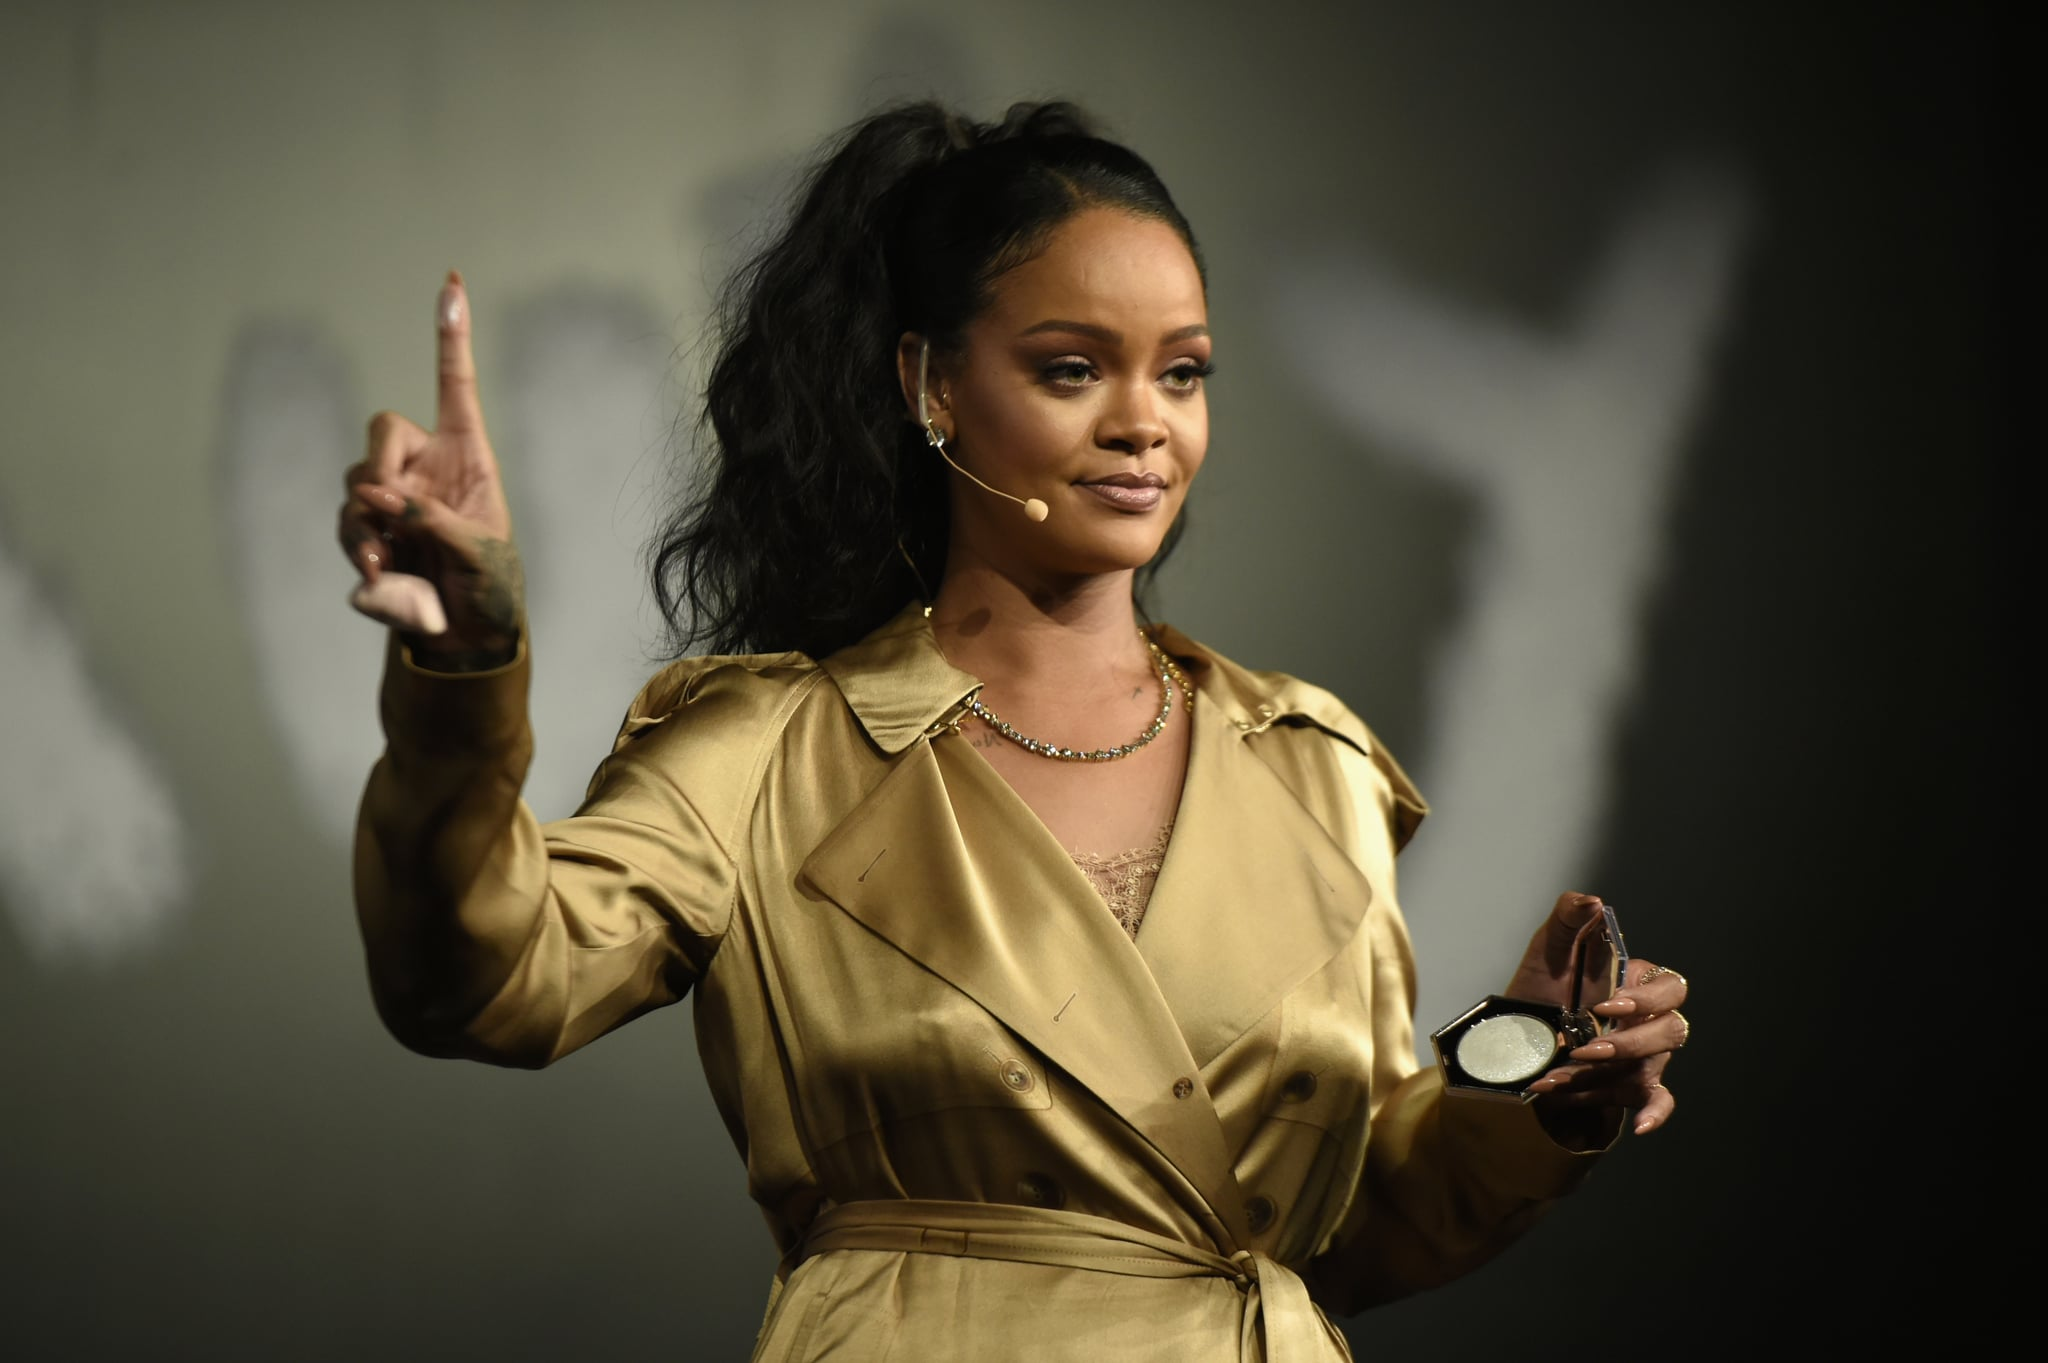 DUBAI, UNITED ARAB EMIRATES - SEPTEMBER 29:  Rihanna gestures on stage during her Fenty Beauty talk in collaboration with Sephora, for the launch of her new Stunna Lip paint